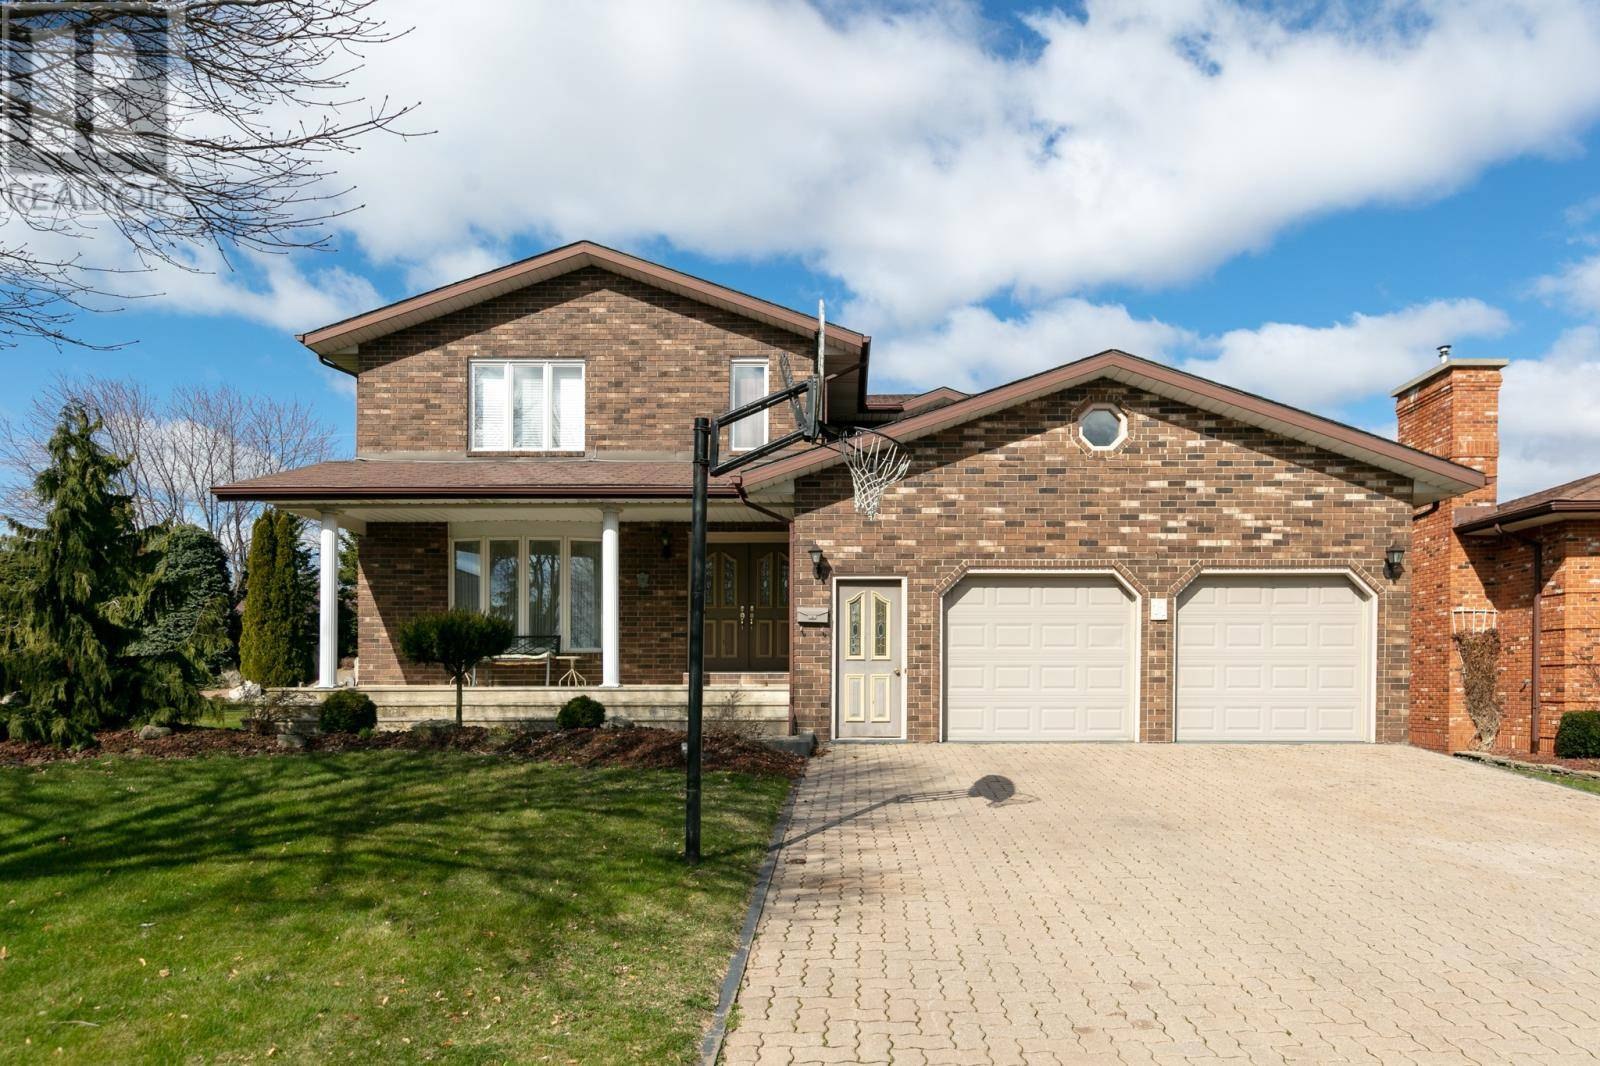 House for sale at 11 Cherrywood  Leamington Ontario - MLS: 20004200